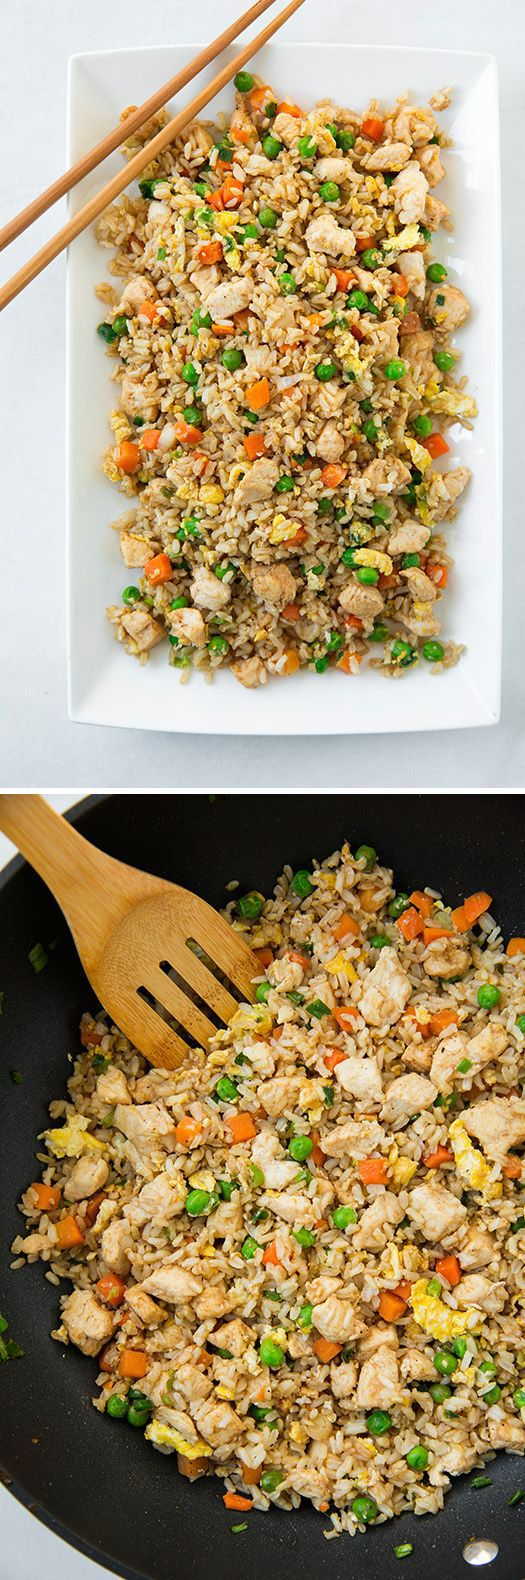 Scrumptious Recipe: Chicken Fried Rice - better than take-out and healthier too! Made with brown rice and chicken instead of ham. A staple recipe!